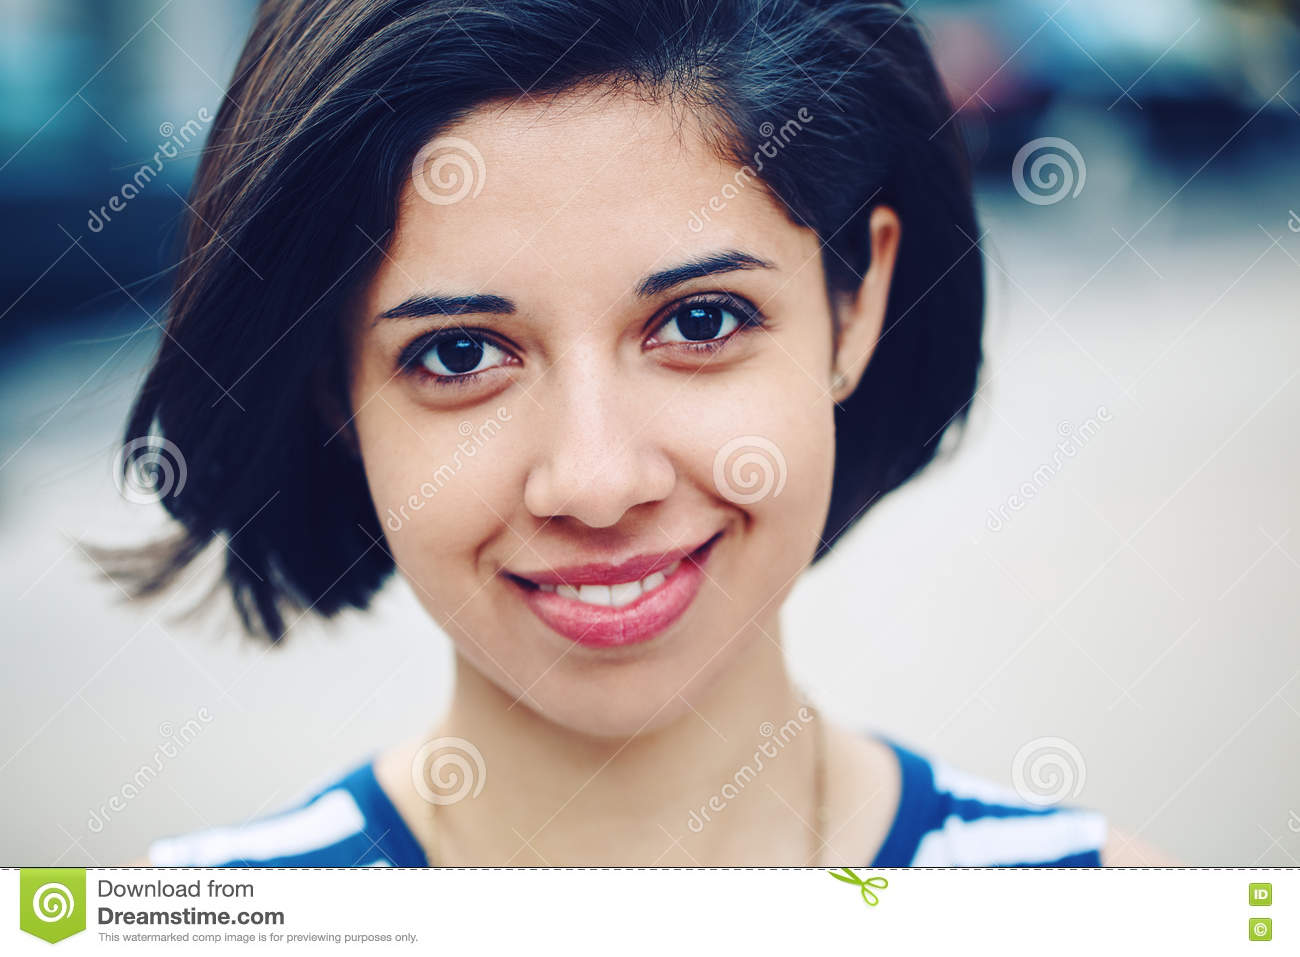 Closeup Portrait Of Beautiful Smiling Young Latin Hispanic Girl